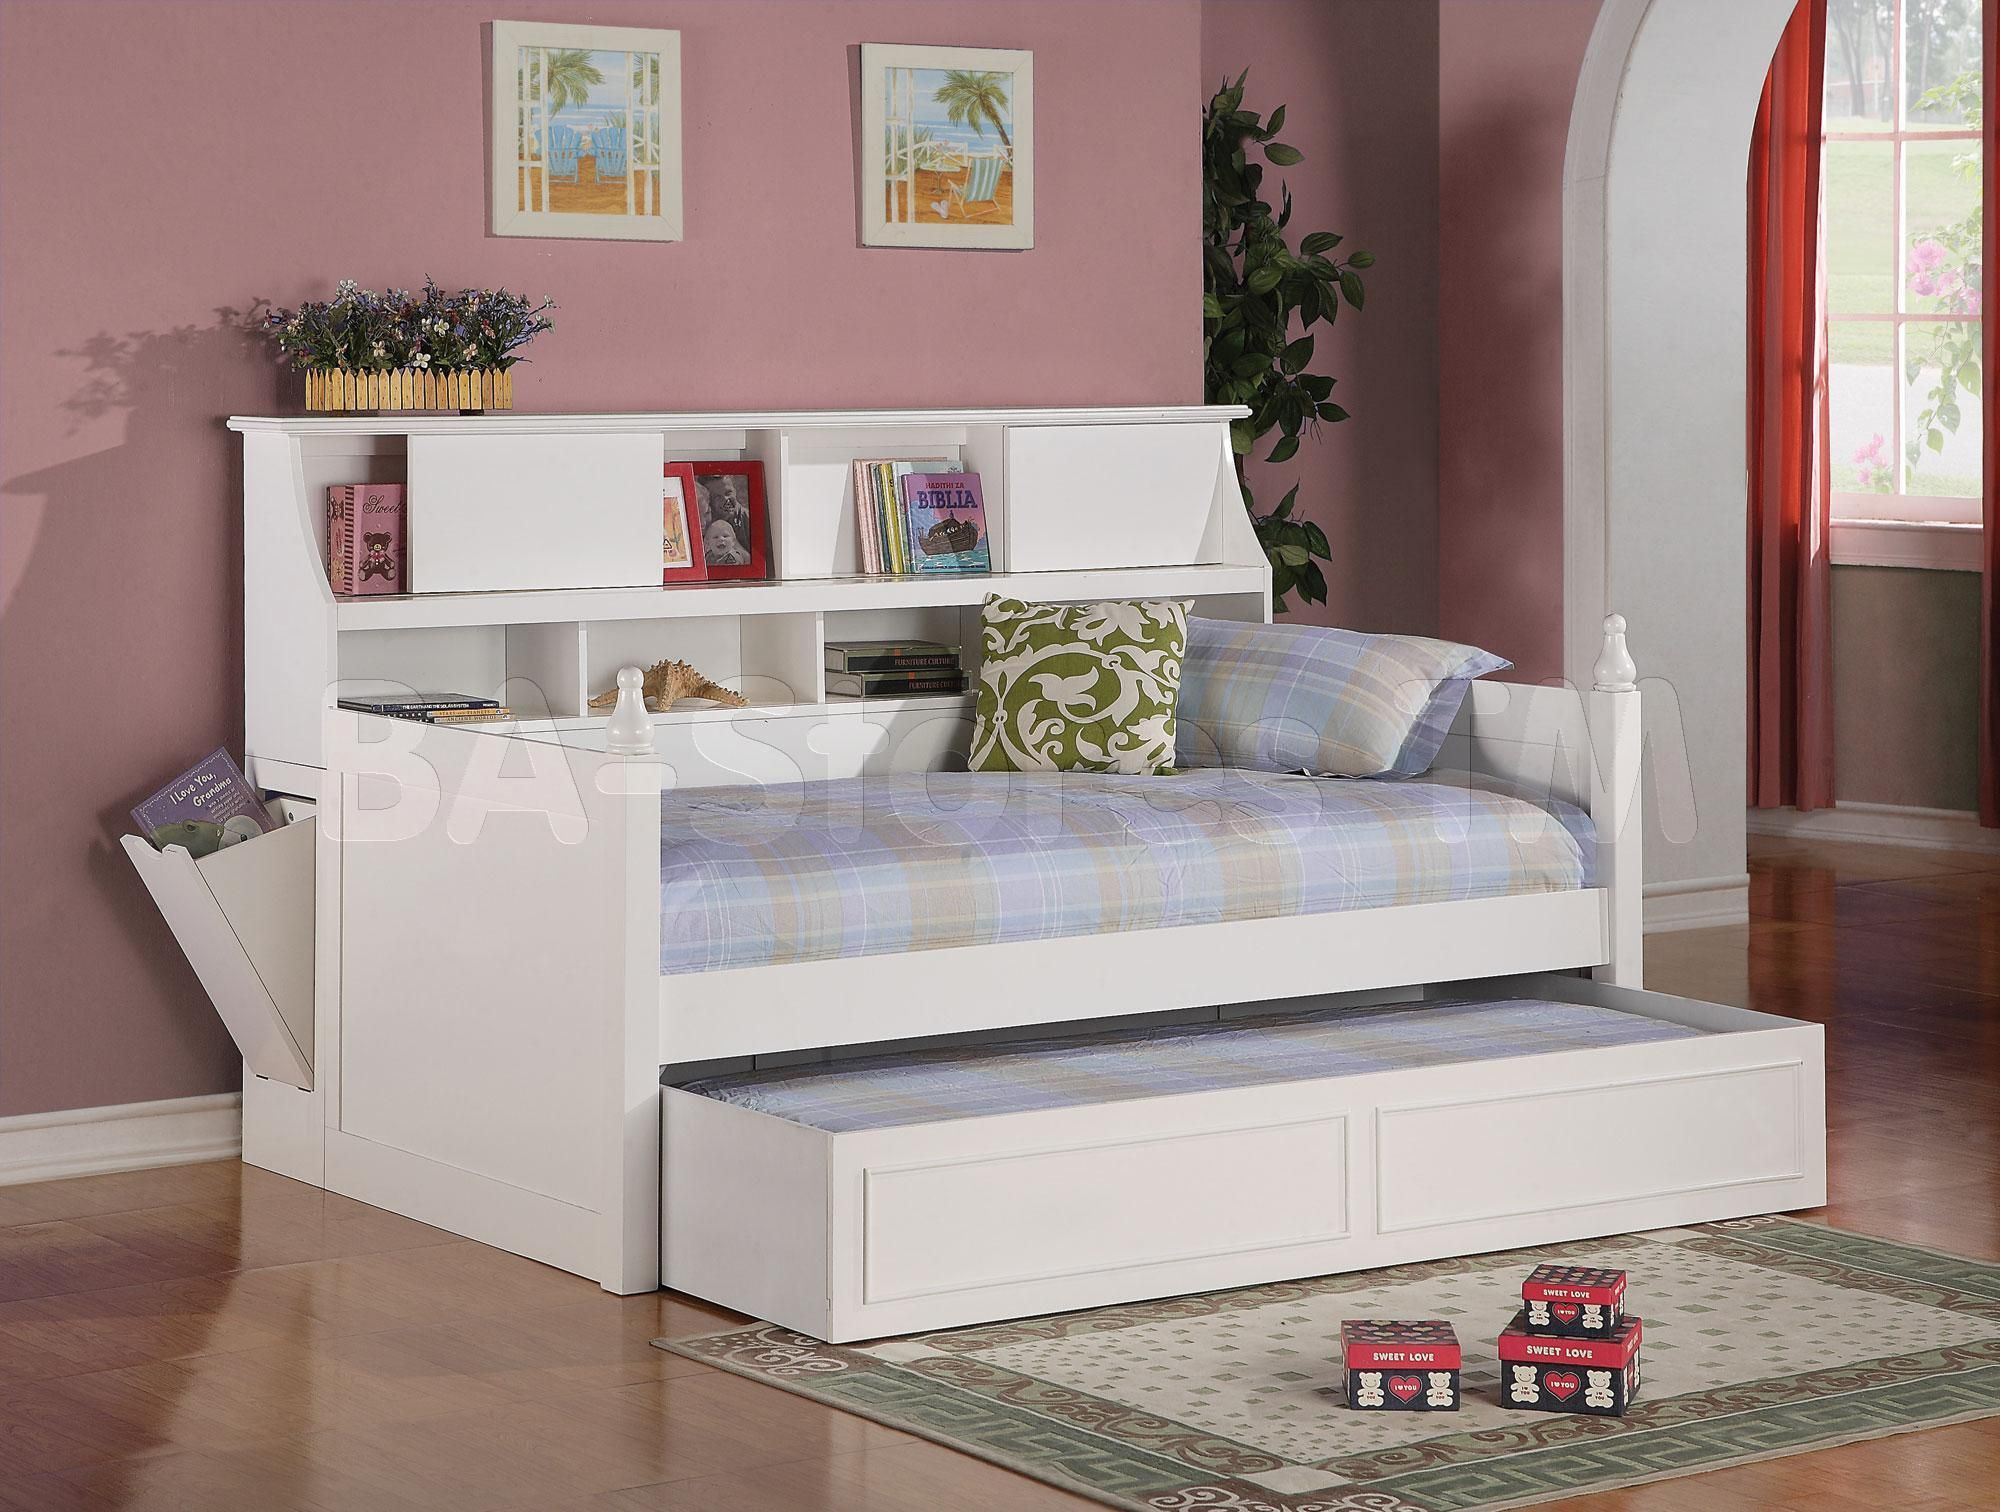 platform bookcase twin storage plans and white hwy headboards size ikea xl shelves zayley ac for prepac chic of with how bedroom view cozy to shelf full build diy headboard your black trundle drawers american design captains sauder shoal daybed pichafh l wall sonoma creek bed larger